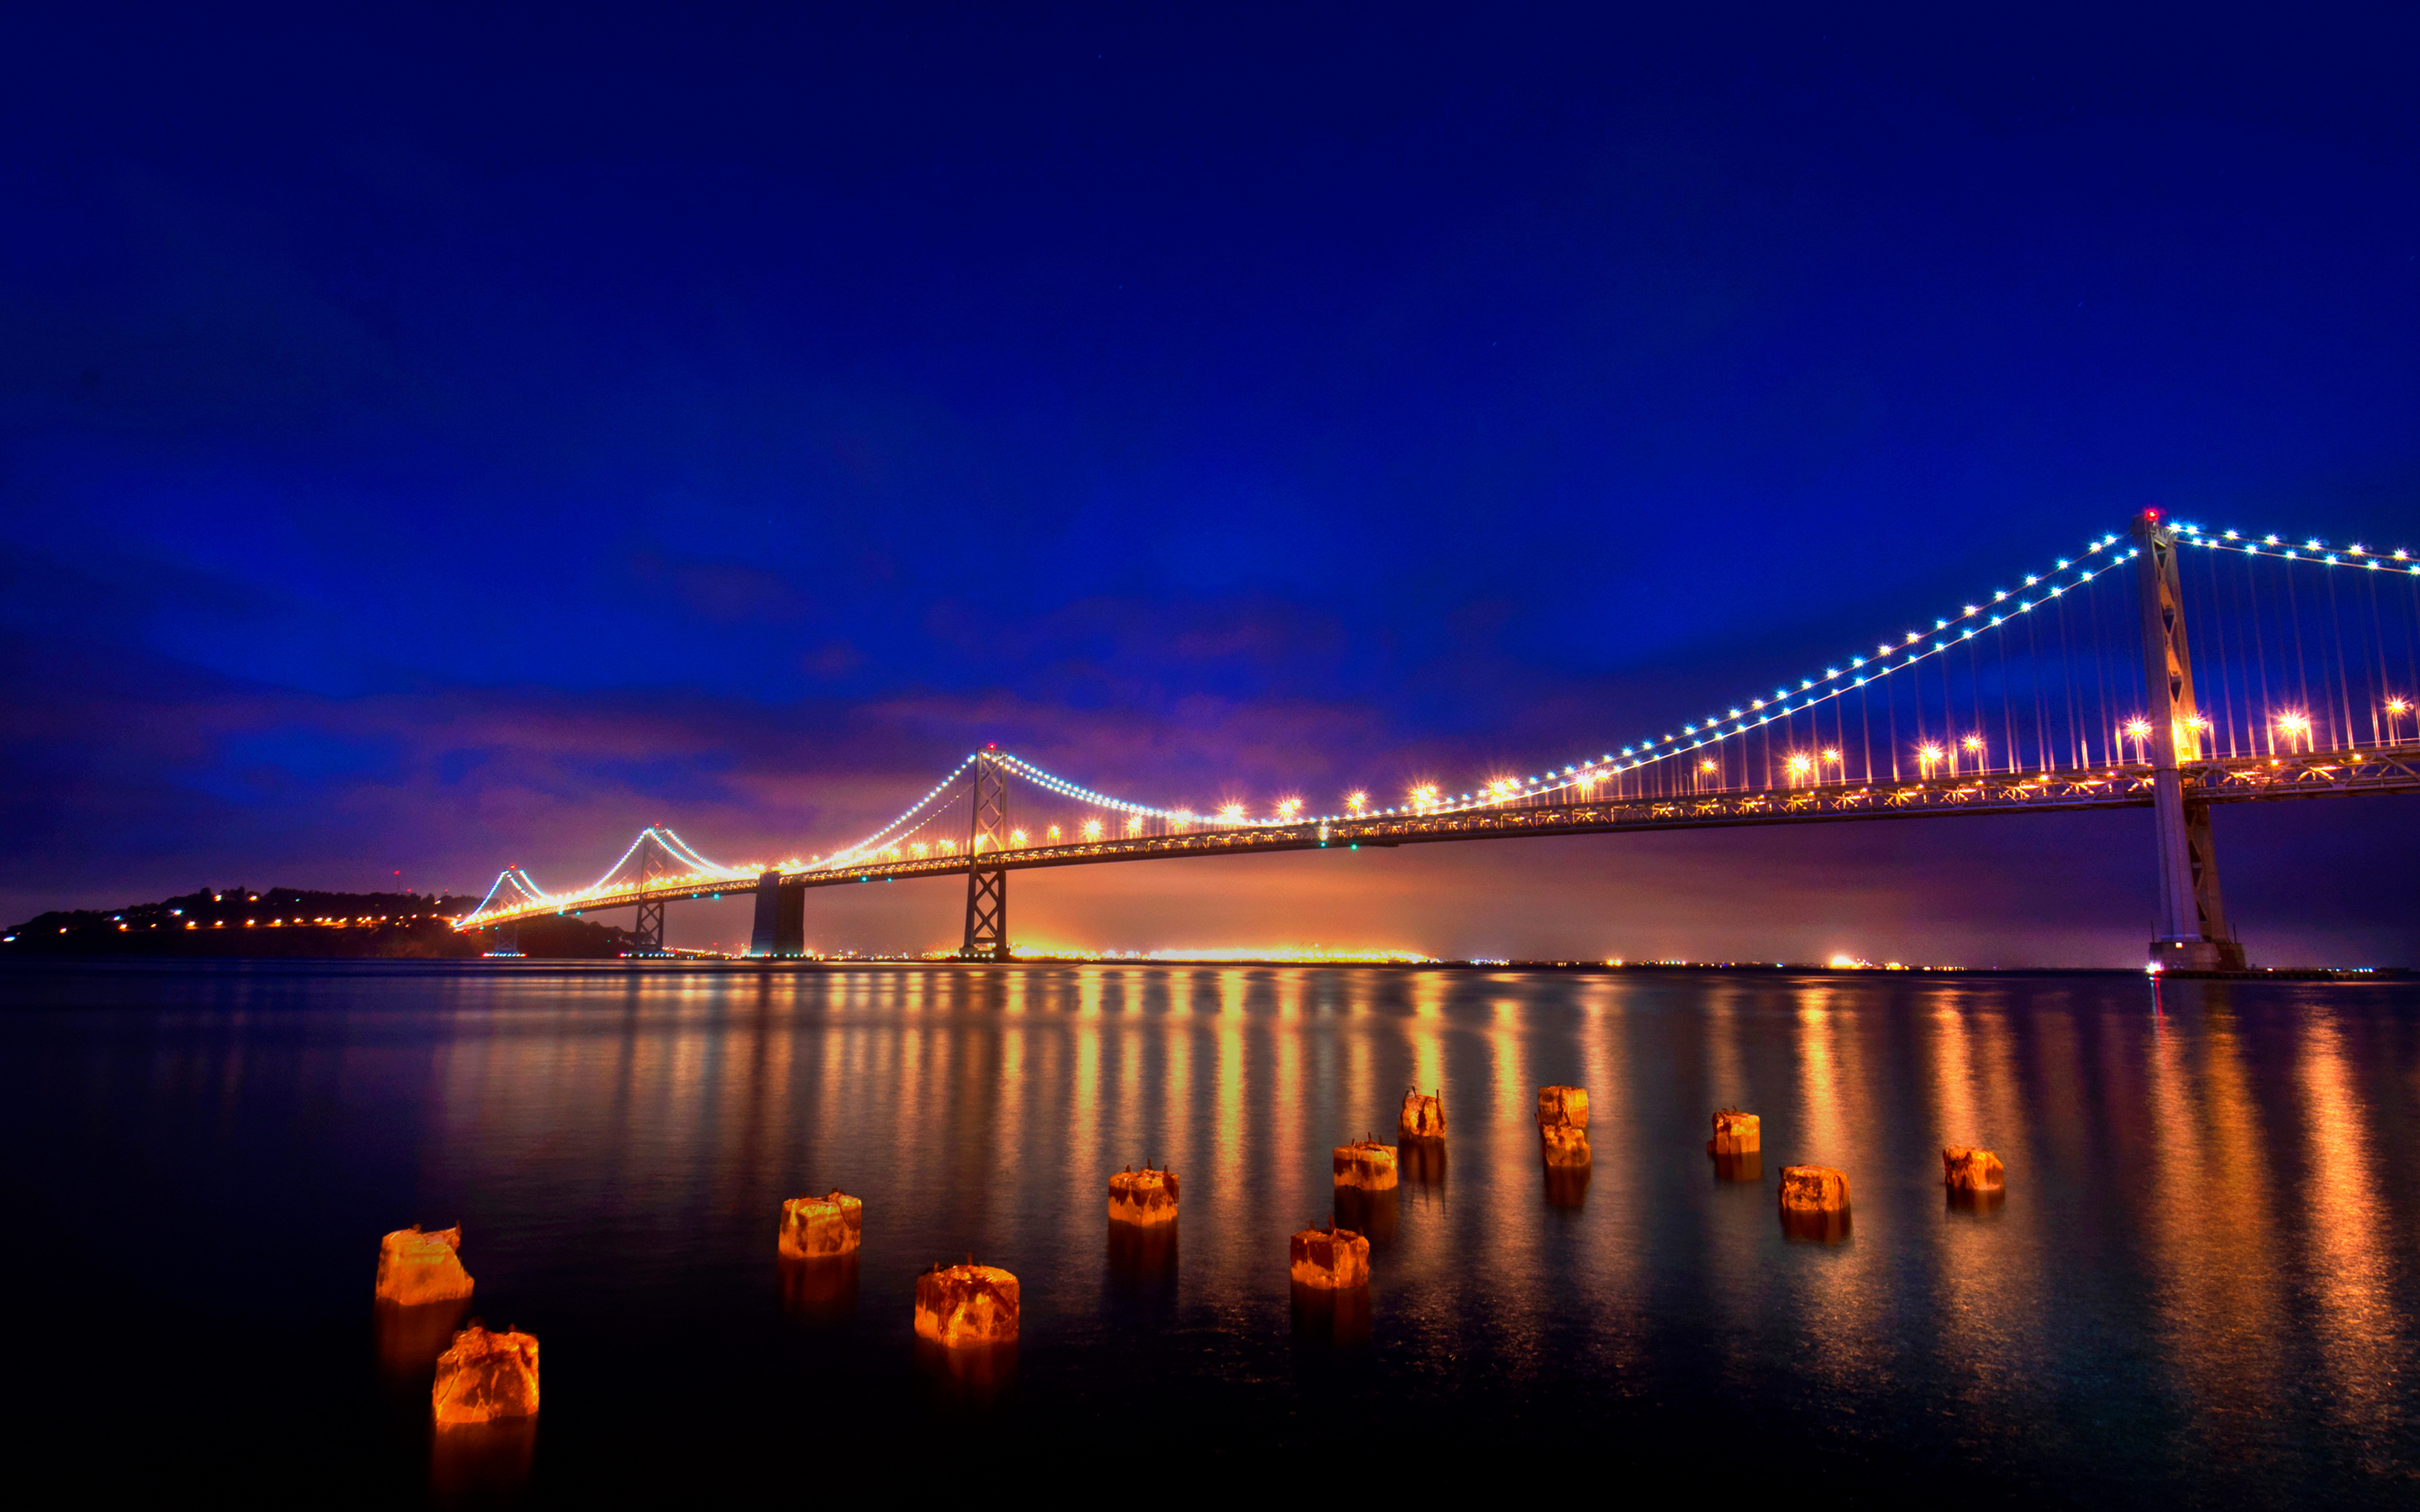 Wallpaper-HD-Travel-San-Francisco-Nights-Picture-For-Desktop